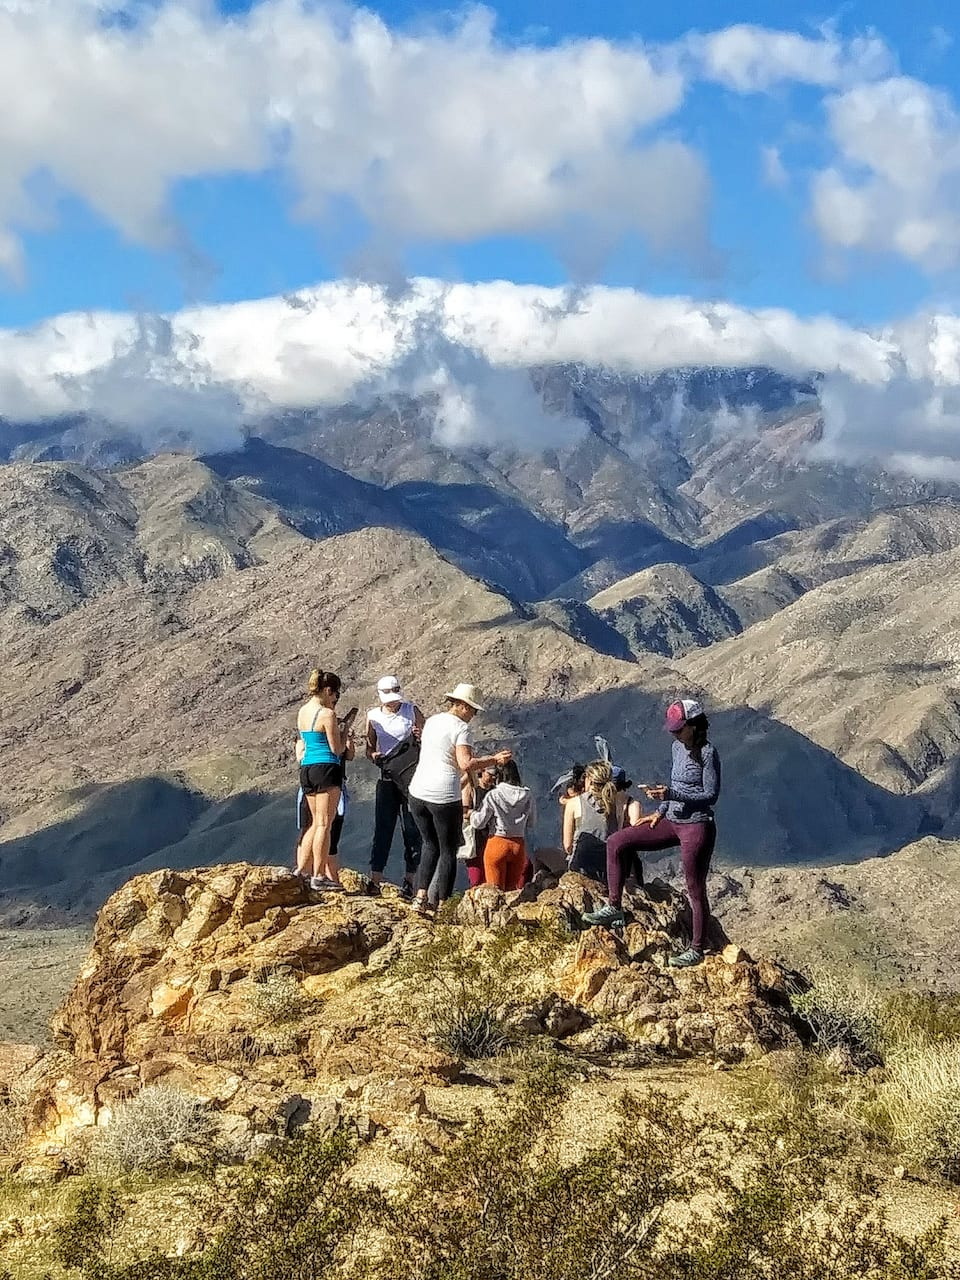 Group of hikers atop a peak in desert mountains